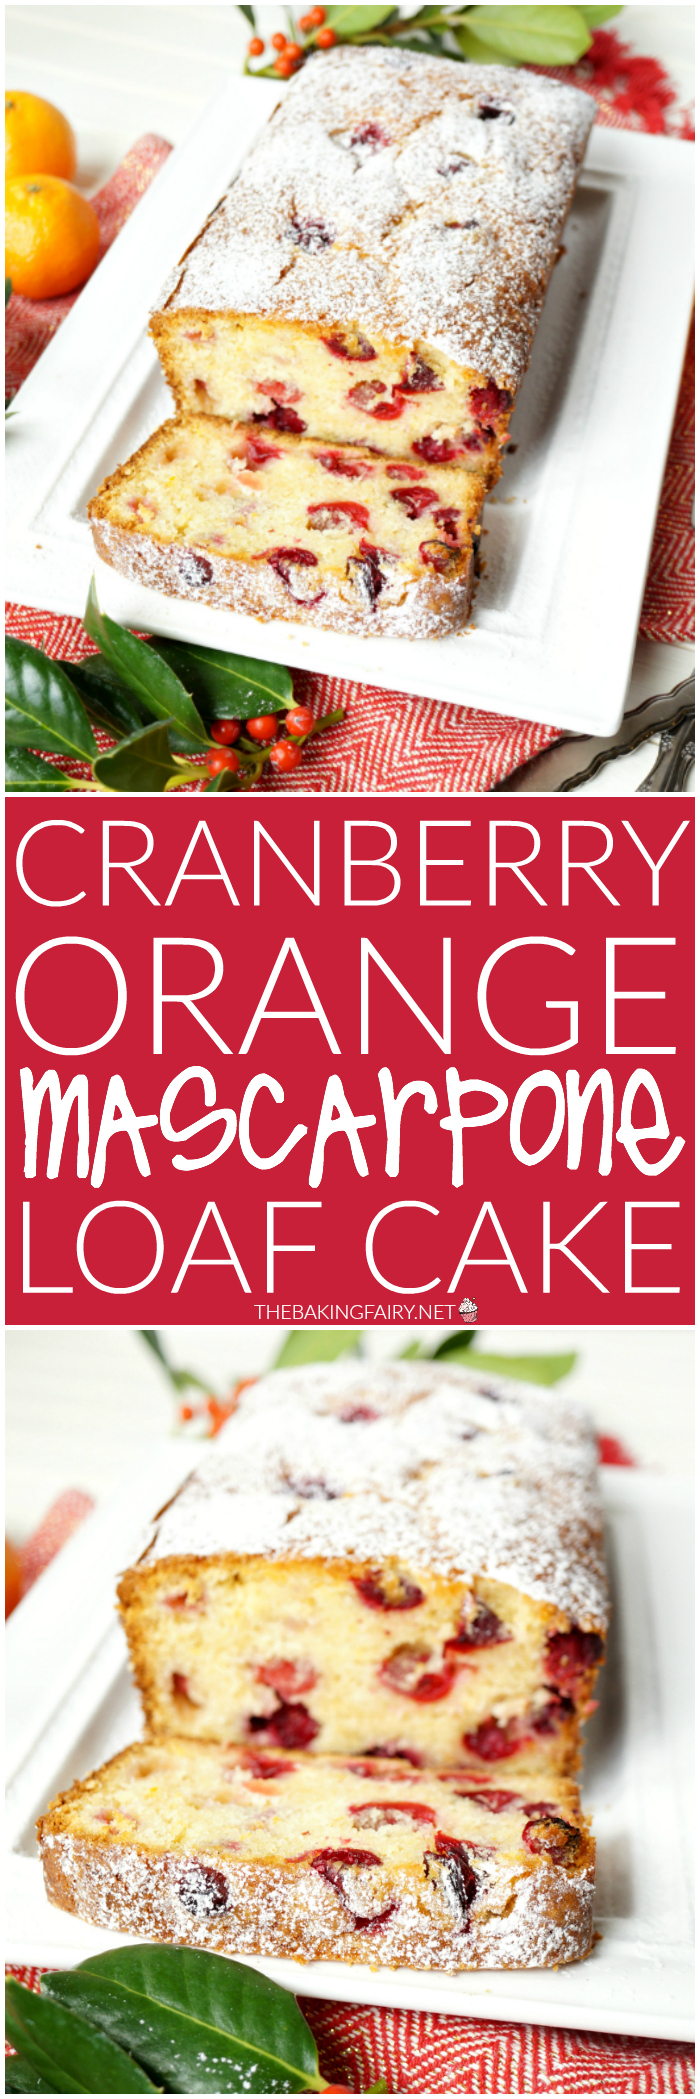 cranberry orange mascarpone loaf cake | The Baking Fairy